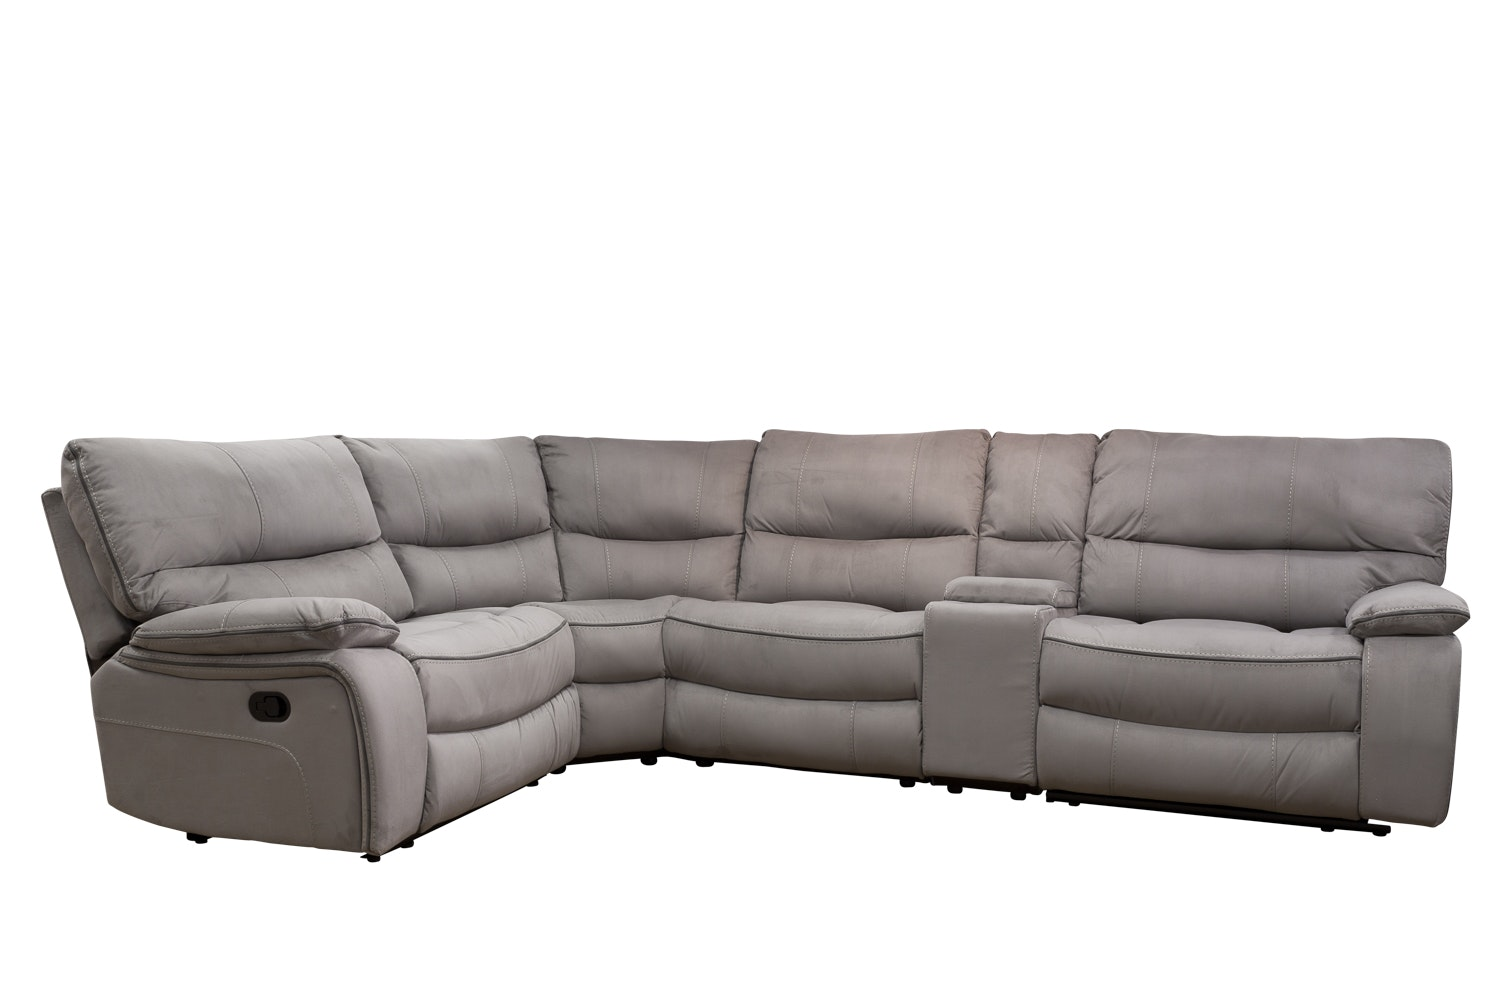 Recliner Sofas Harvey Norman Ireland ~ Best Place To Buy Reclining Sofa